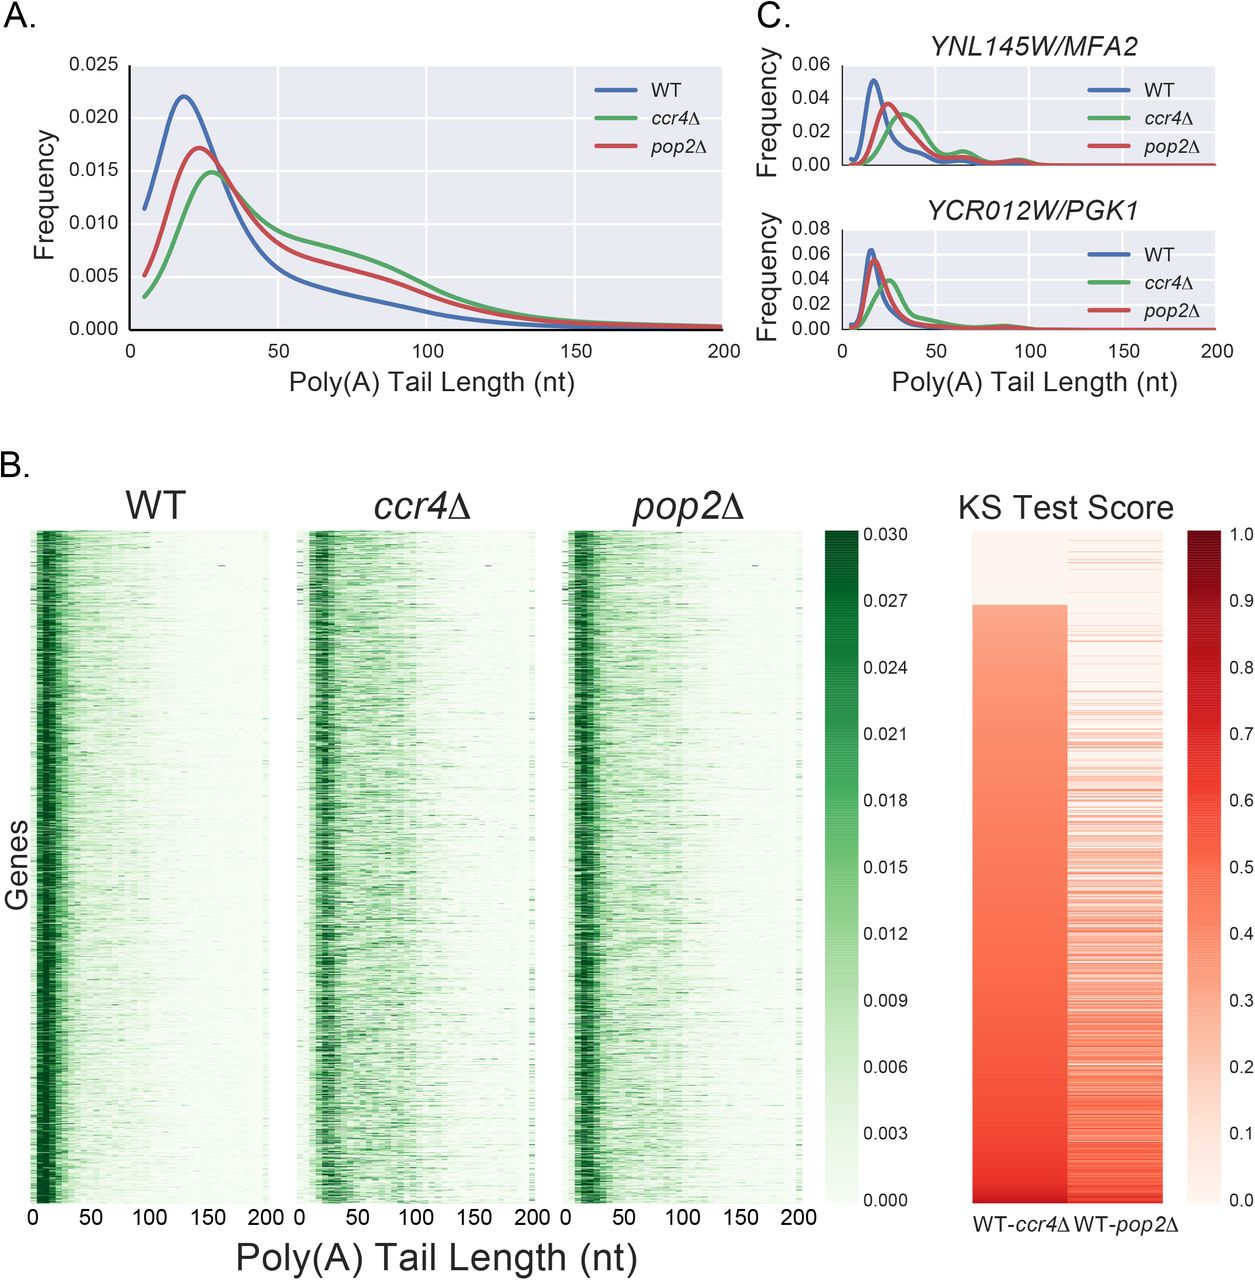 Ccr4 and Pop2 control poly(A) tail length in Saccharomyces